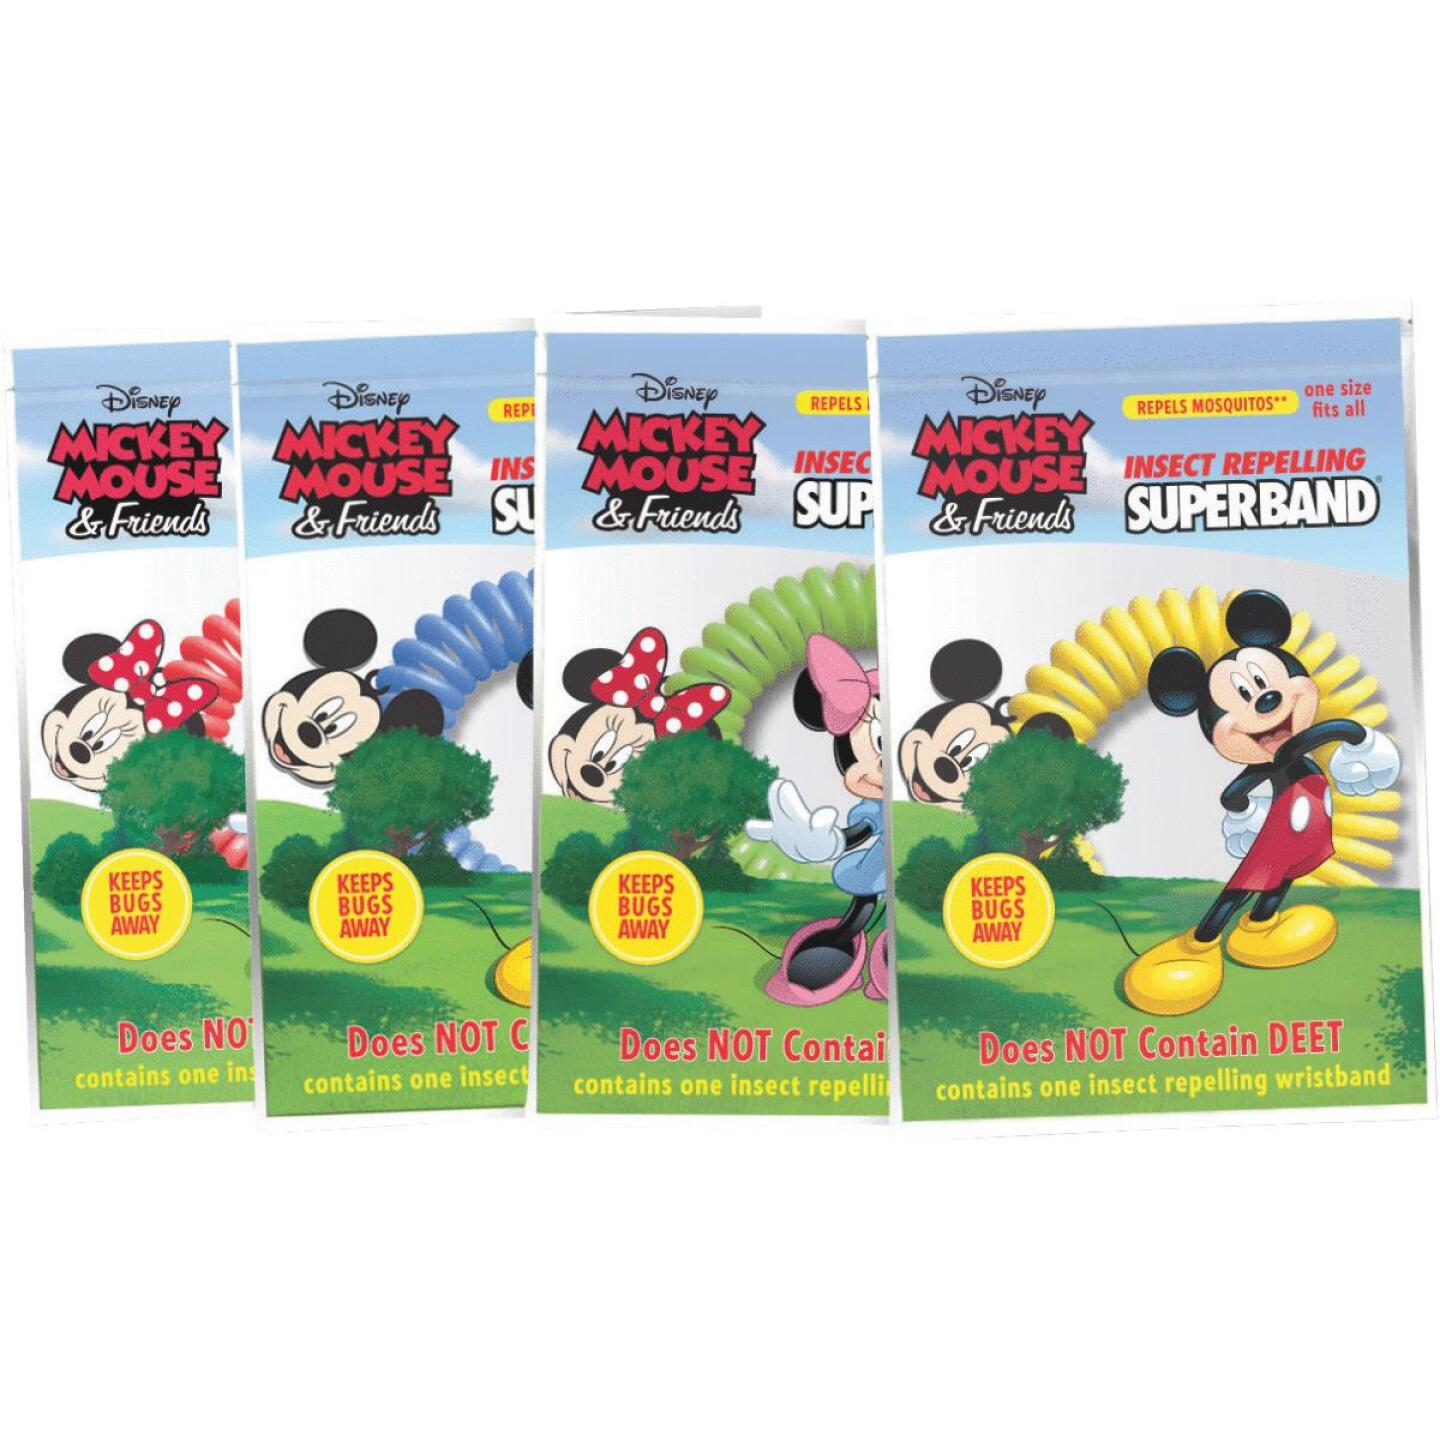 Evergreen Products Disney Assorted Color Insect Repelling Wristband Image 2